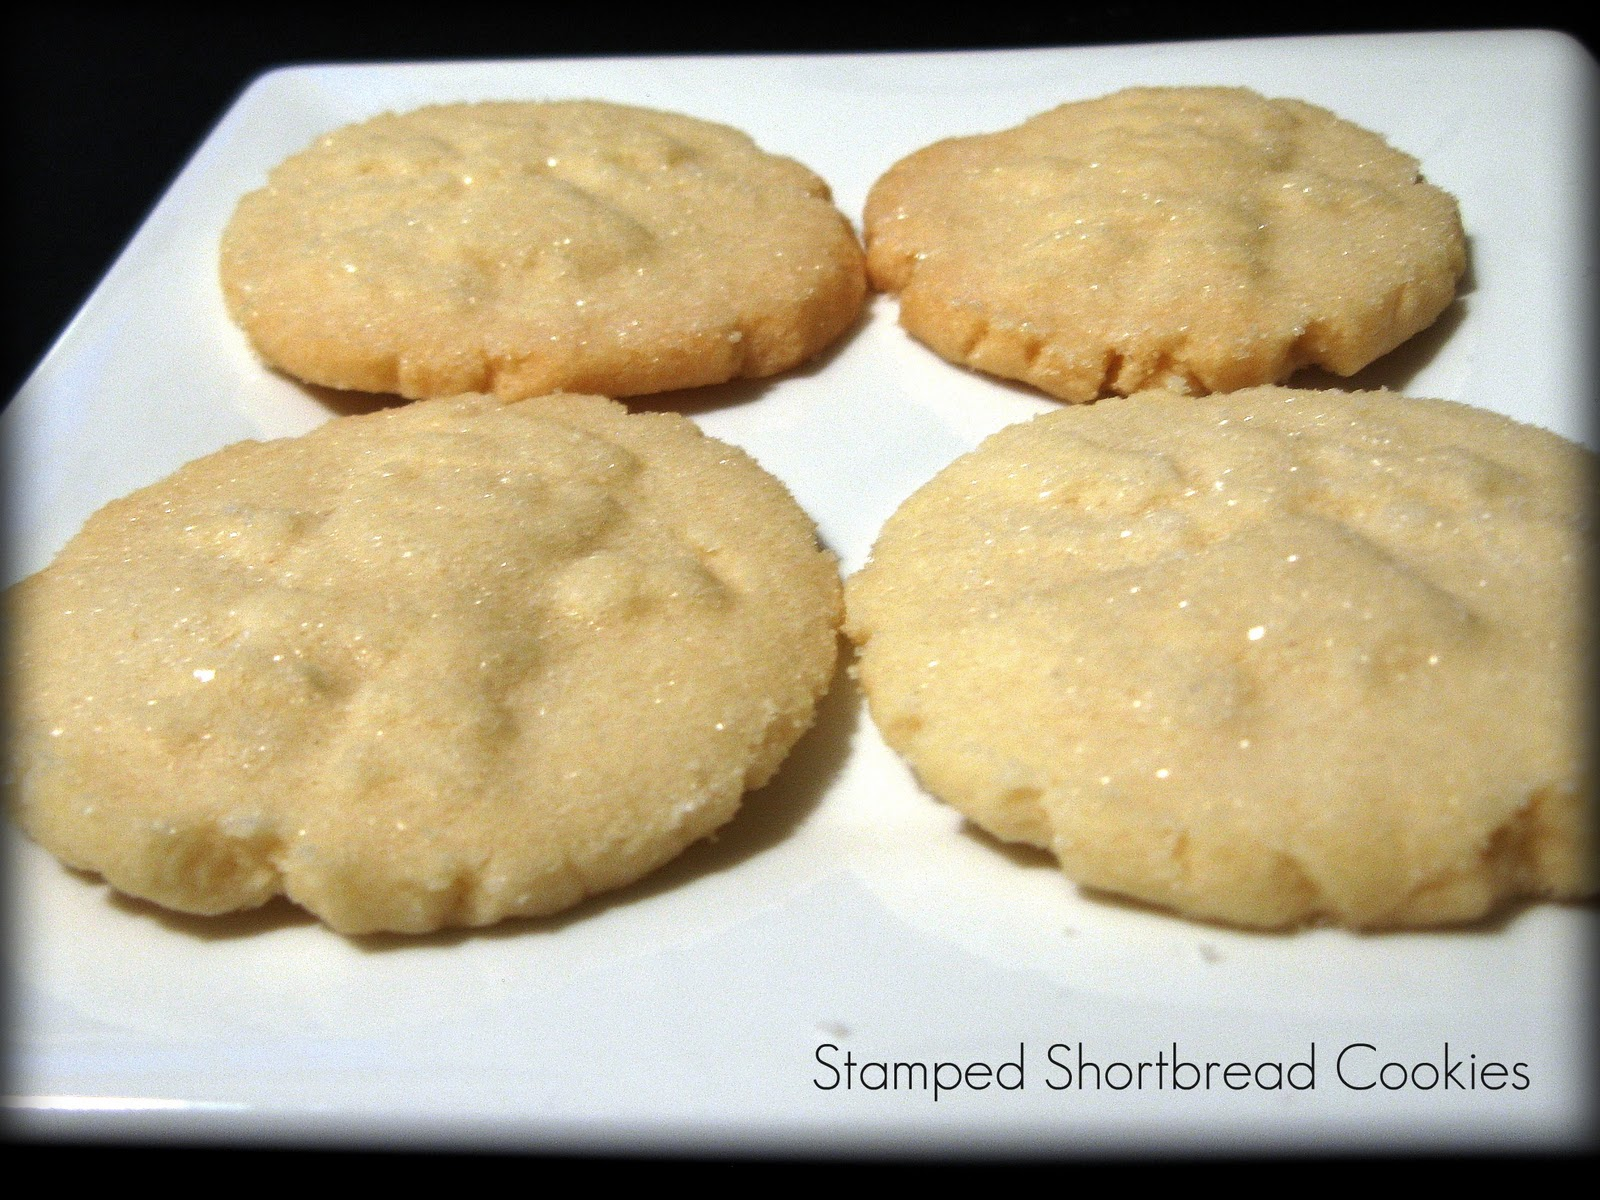 Holiday Baking - Stamped Shortbread Cookies - A Jennuine Life